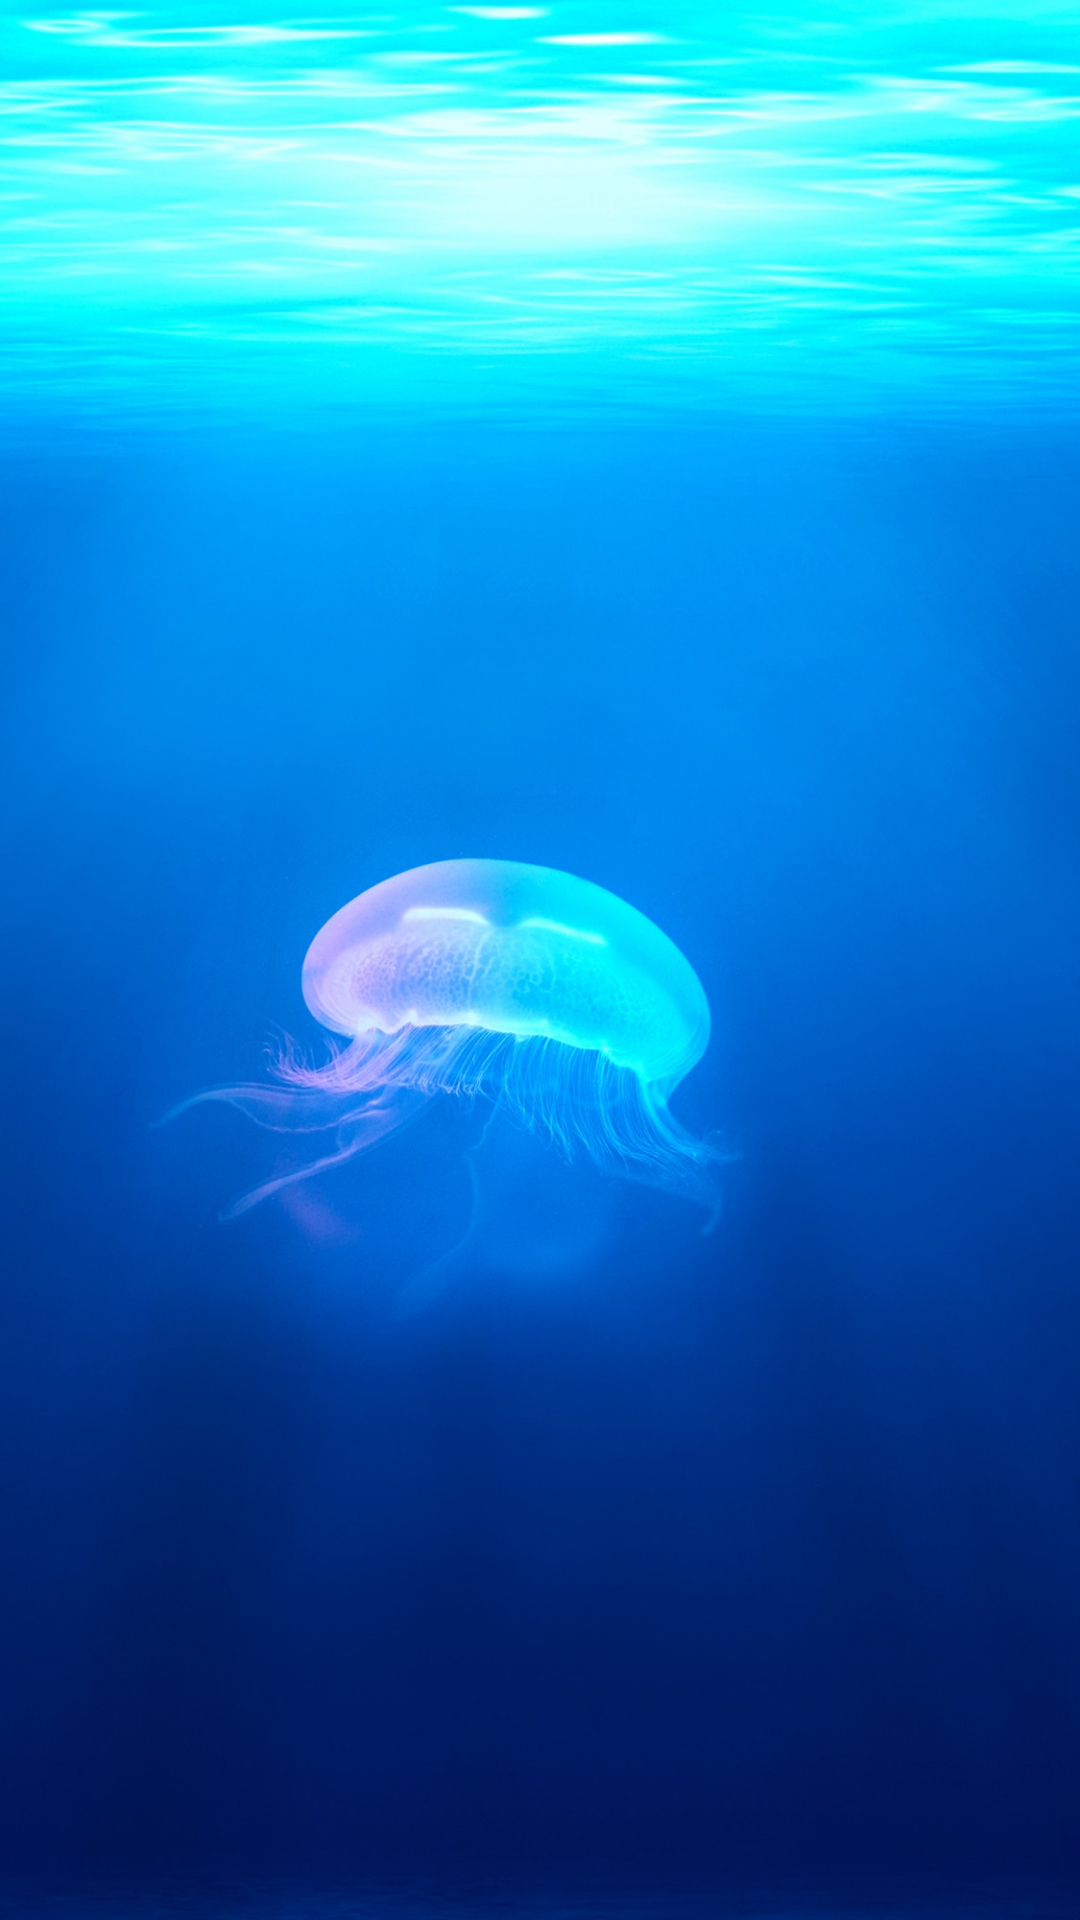 iPhone Wallpaper Jellyfish Water Ocean 3Wallpapers : notre sélection de fonds d'écran du 01/02/2018